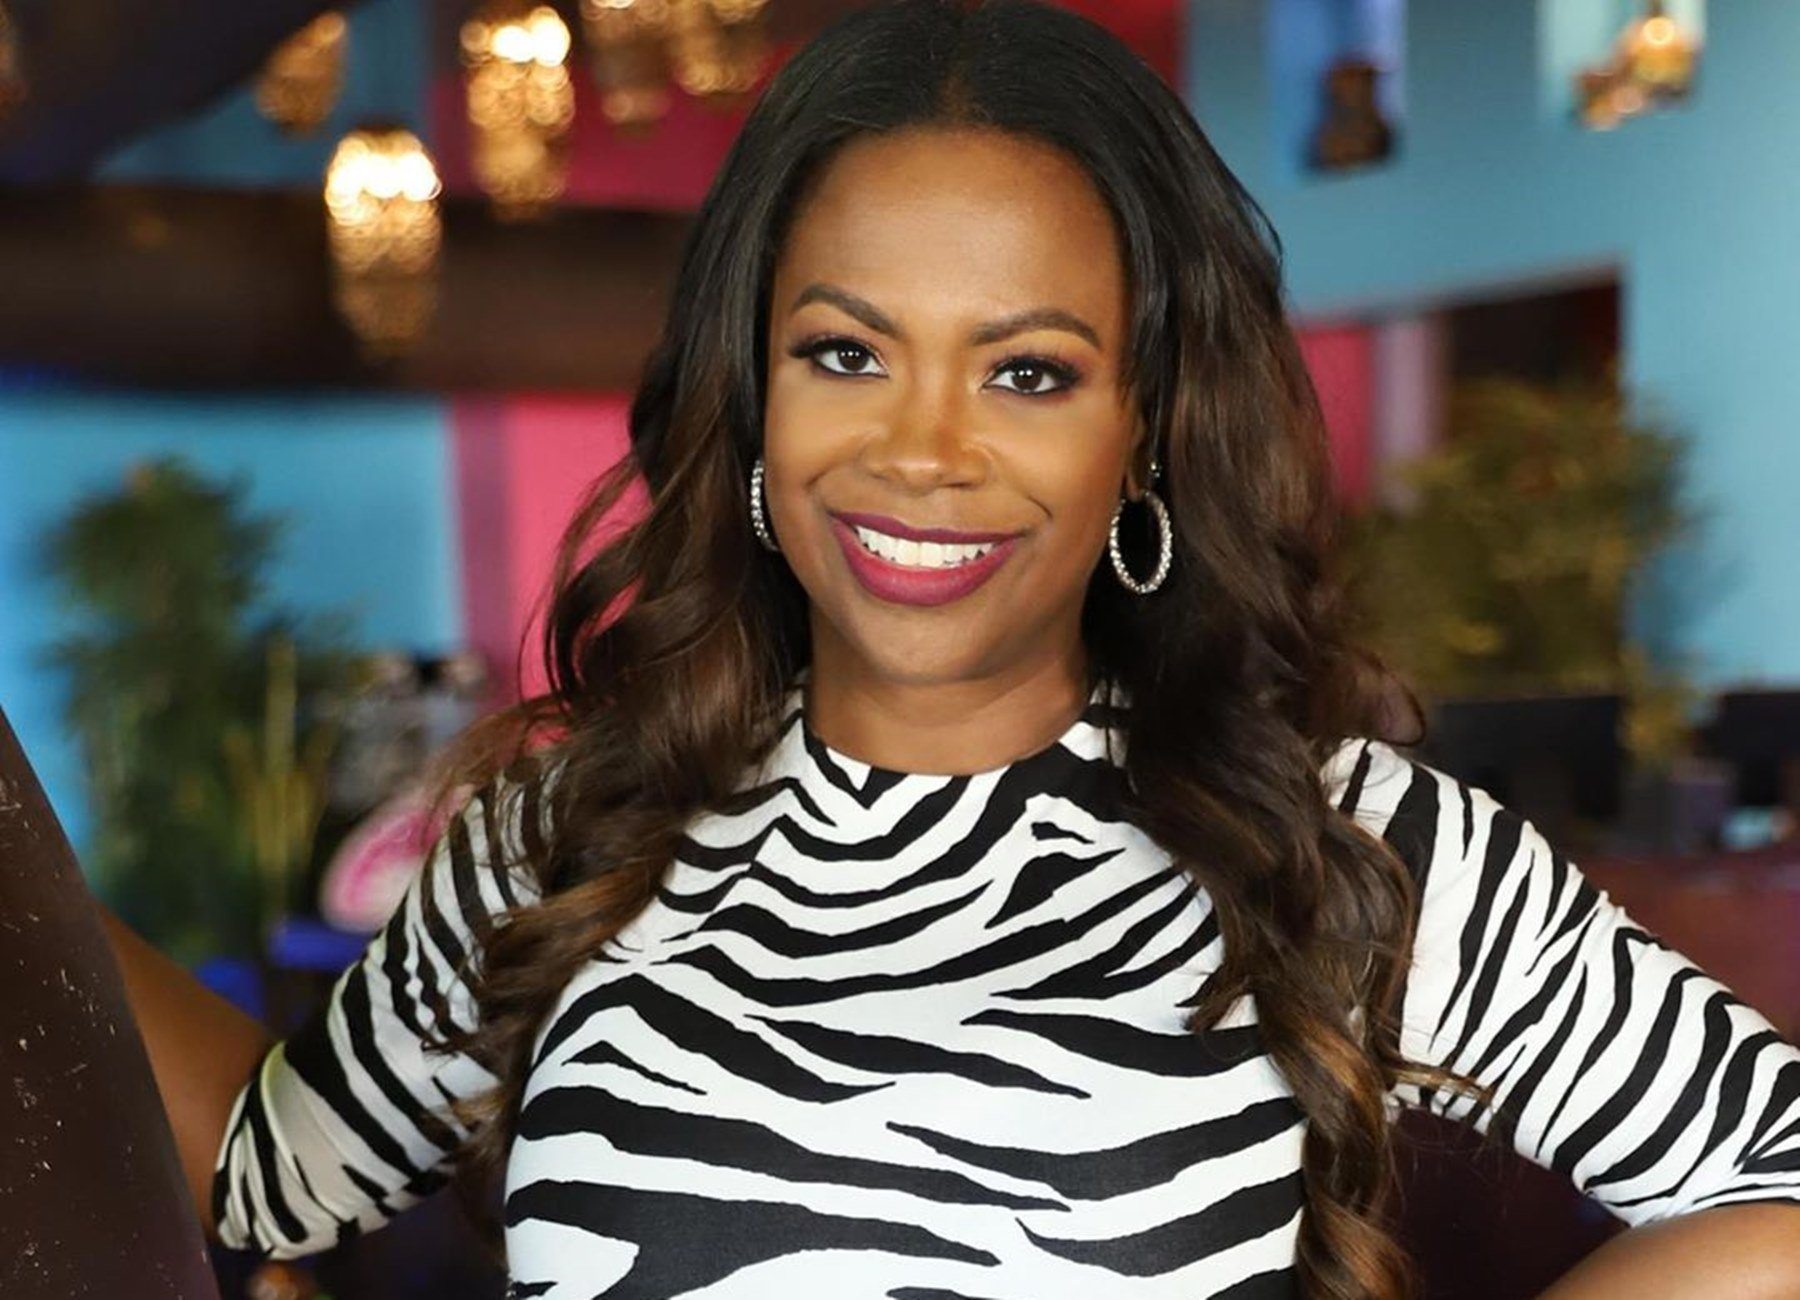 Kandi Burruss Hangs Out With Friends At Dinner At Brunch - See Their Photos